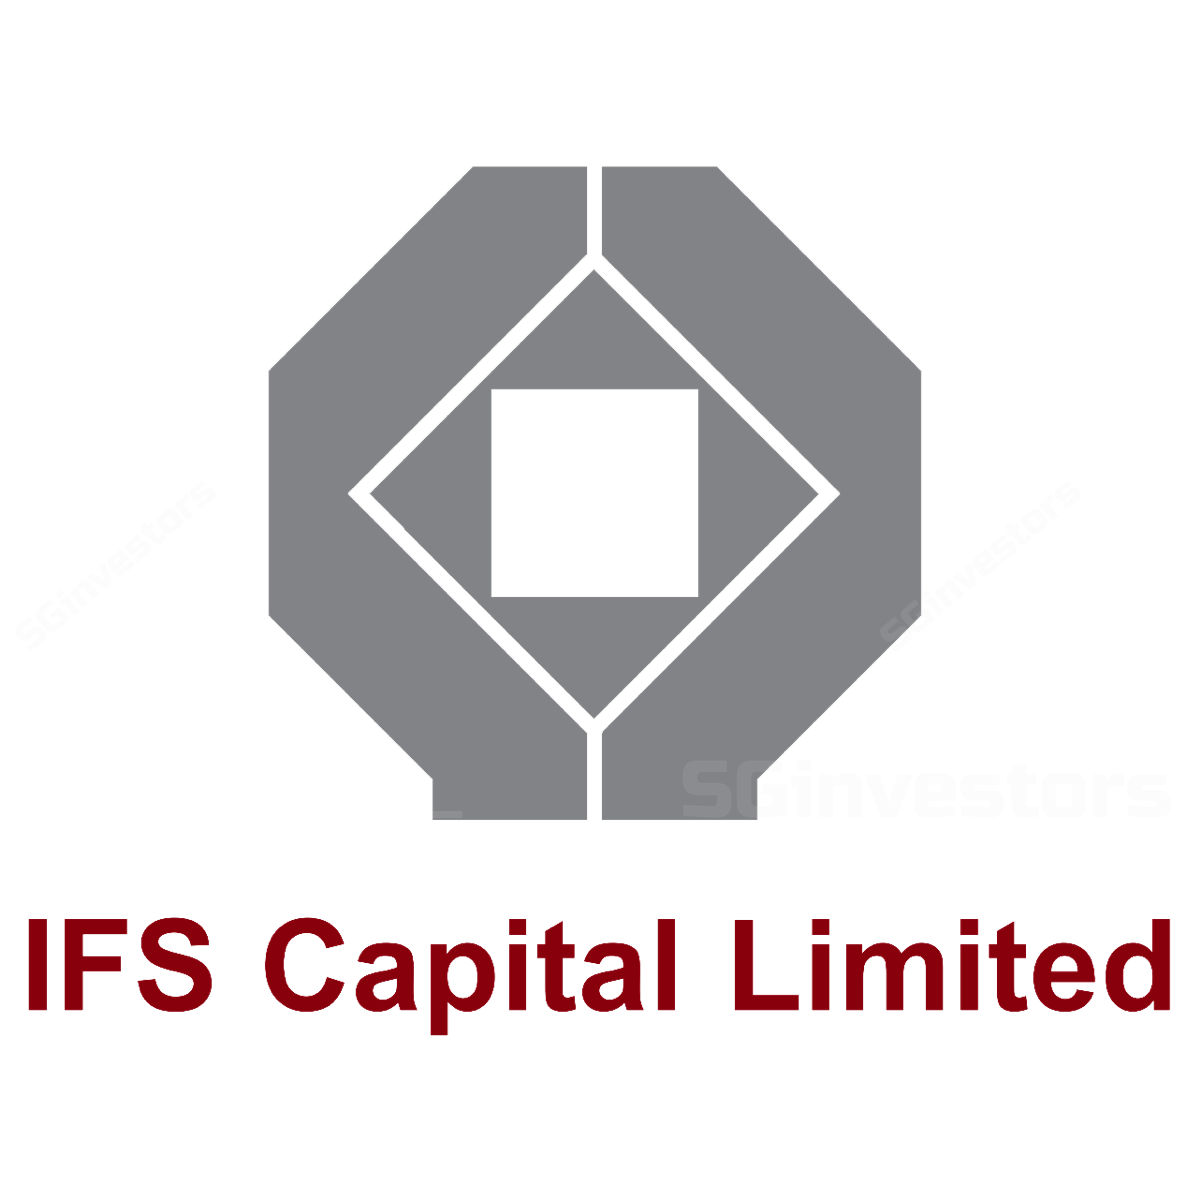 IFS Capital Ltd - CIMB Research 2018-04-04: Financing Specialist For SMEs